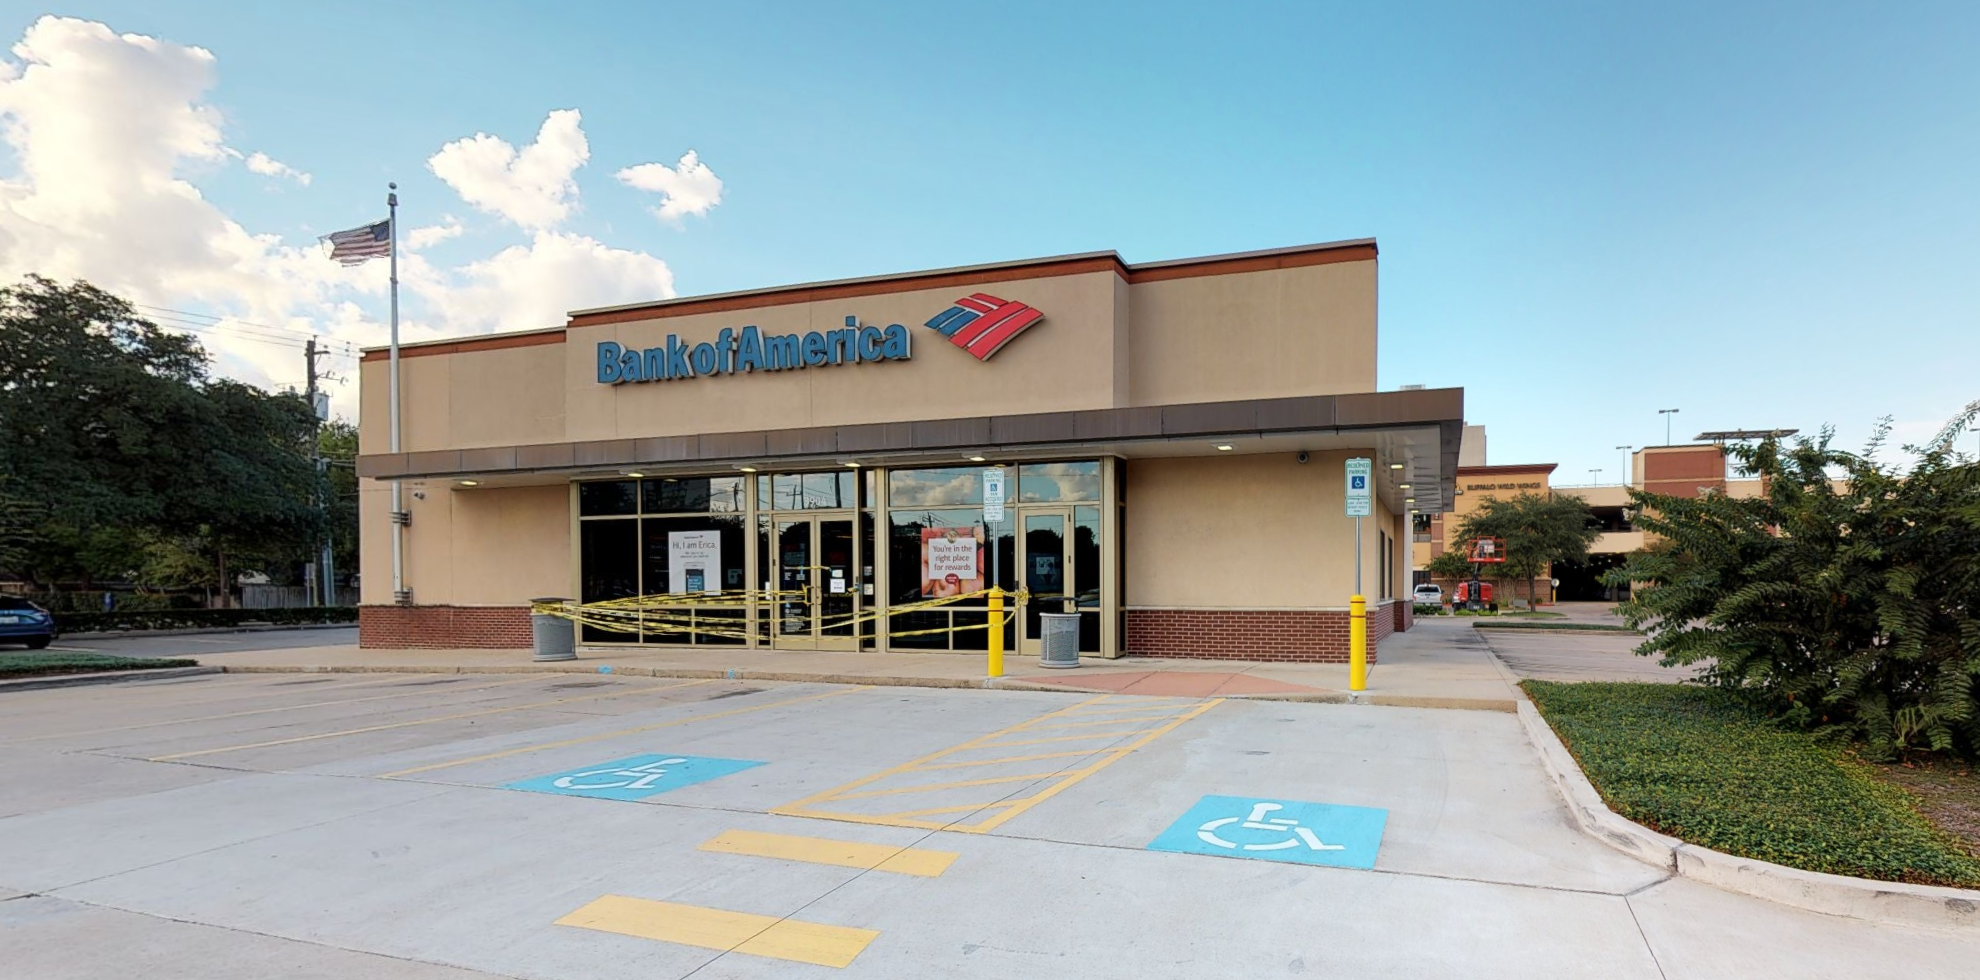 Bank of America financial center with drive-thru ATM | 3904 Richmond Ave, Houston, TX 77027